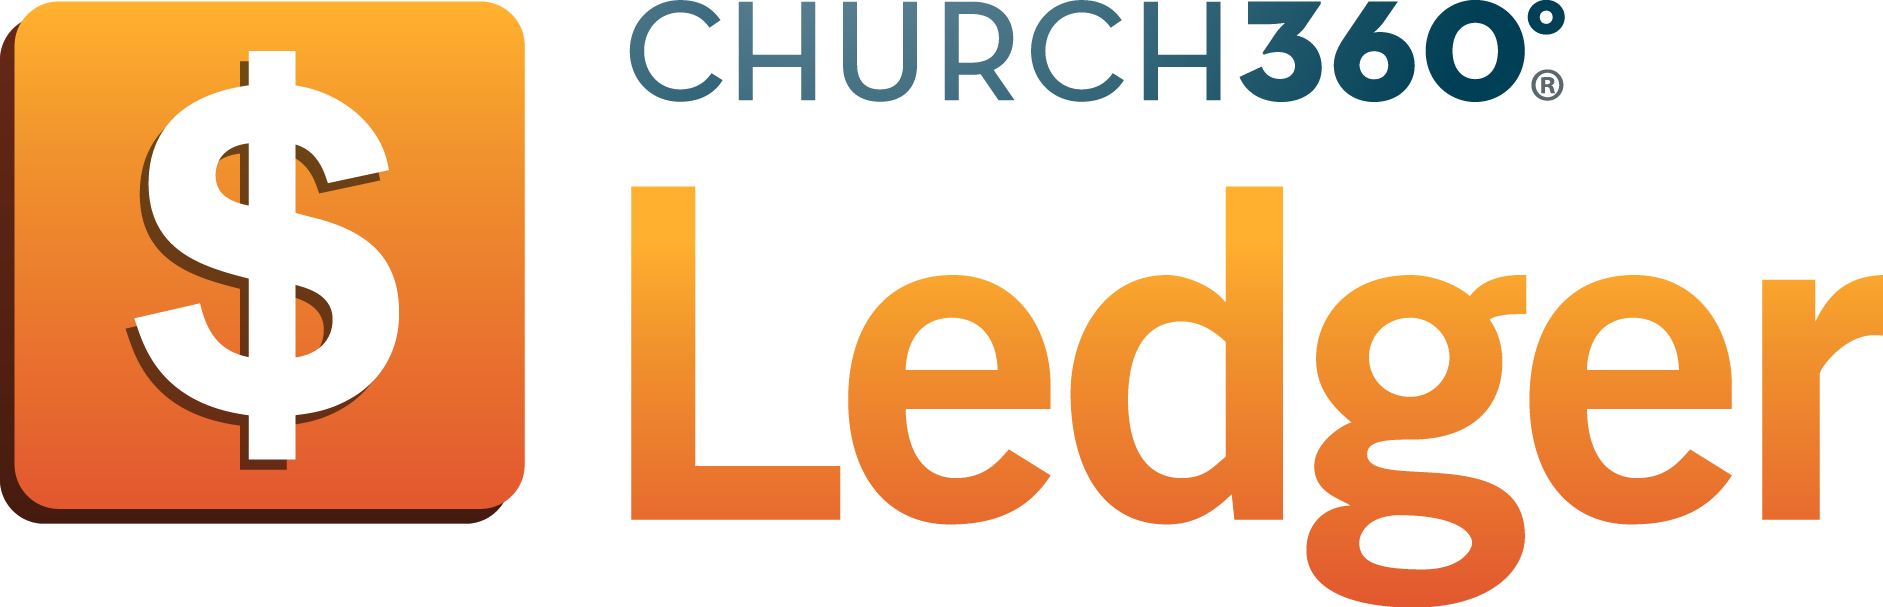 Church360-Ledger